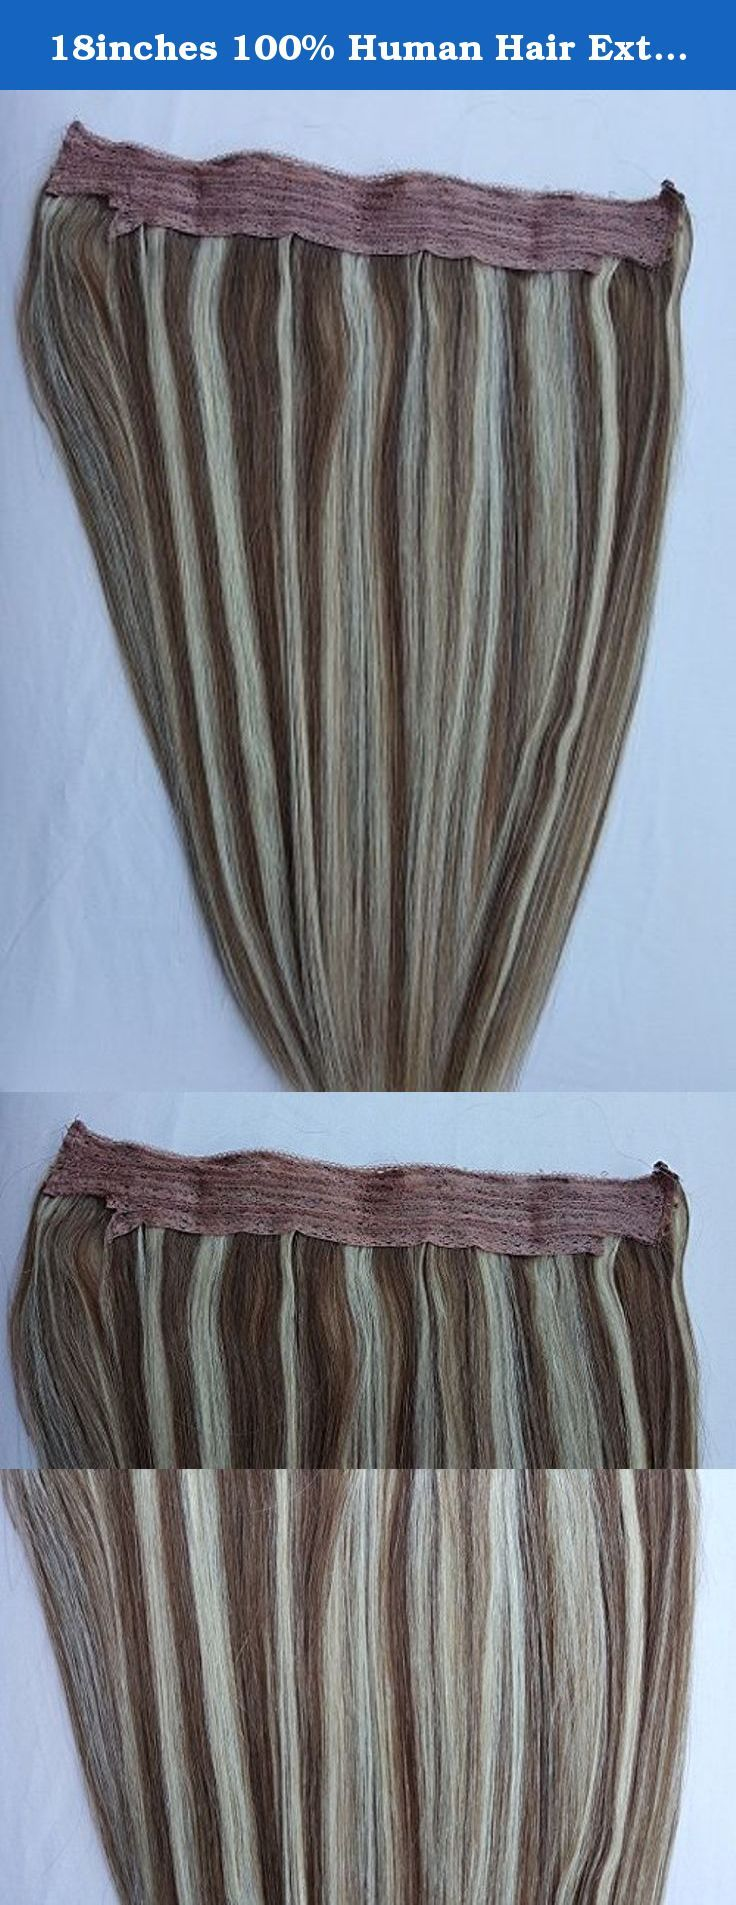 18inches 100 Human Hair Extensions Halo Style One Piece No Clip